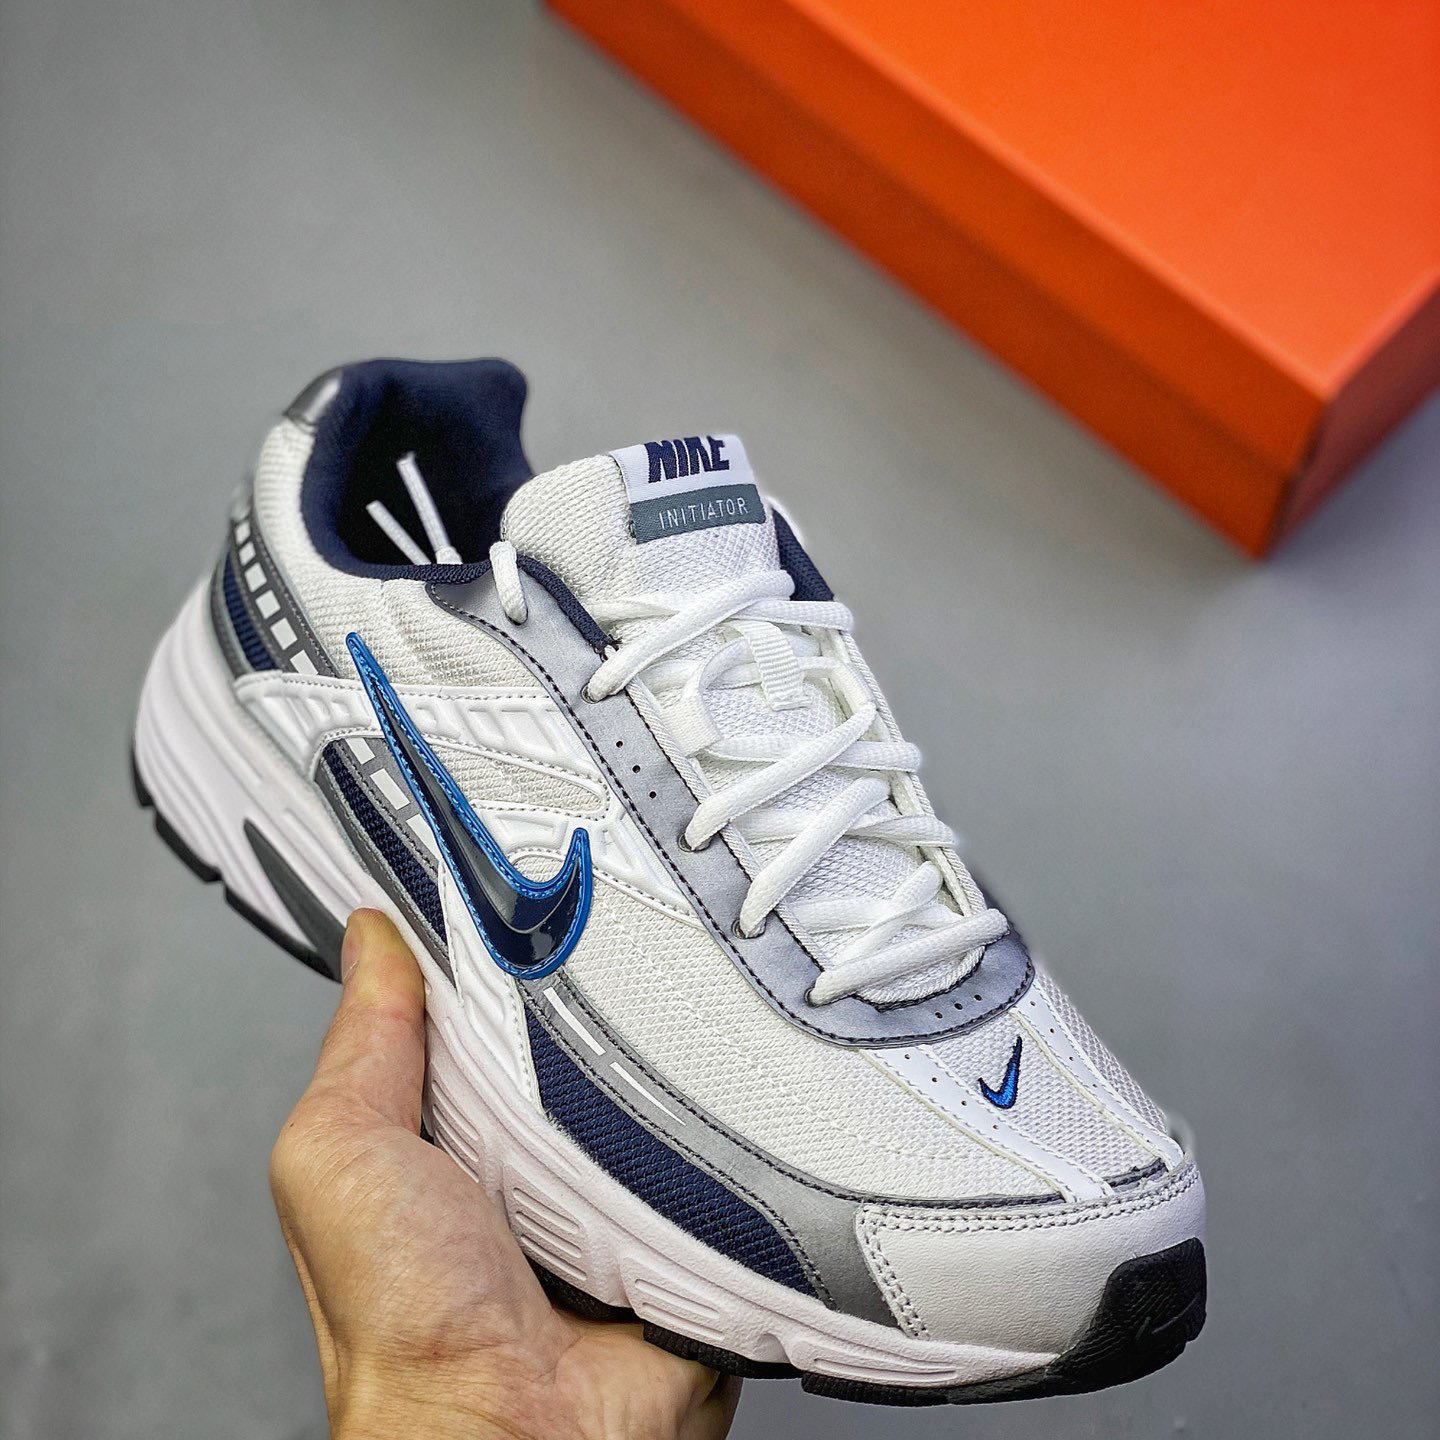 Nike Initiator 2020 Vintage Daddy shoes